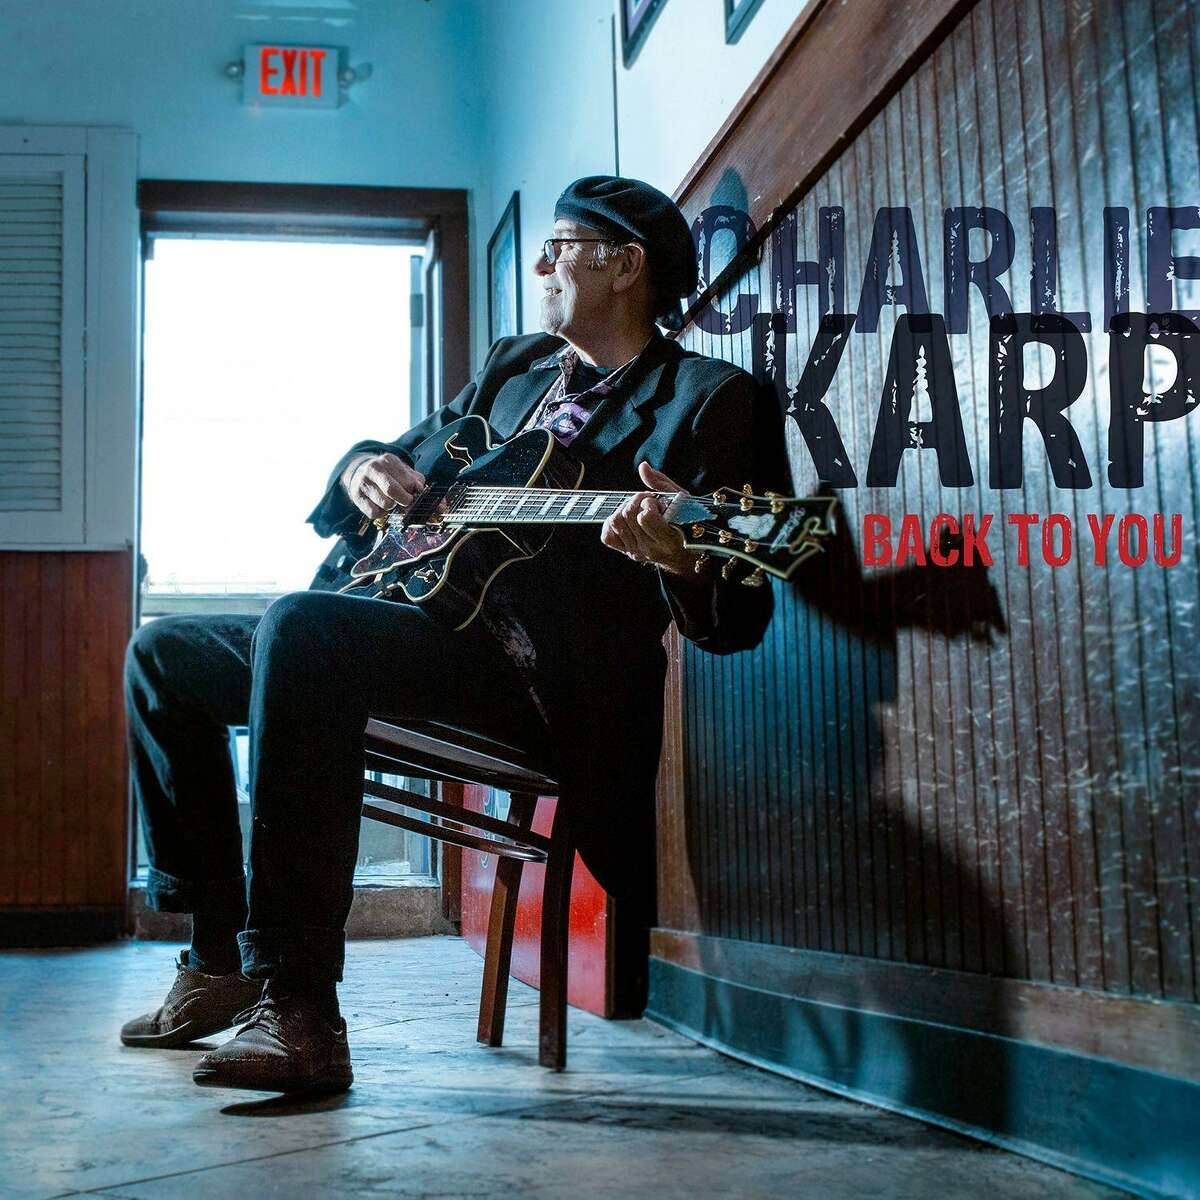 Charlie Karp, a Fairfield resident longtime musician, reportedly died Sunday, March 10, 2019.